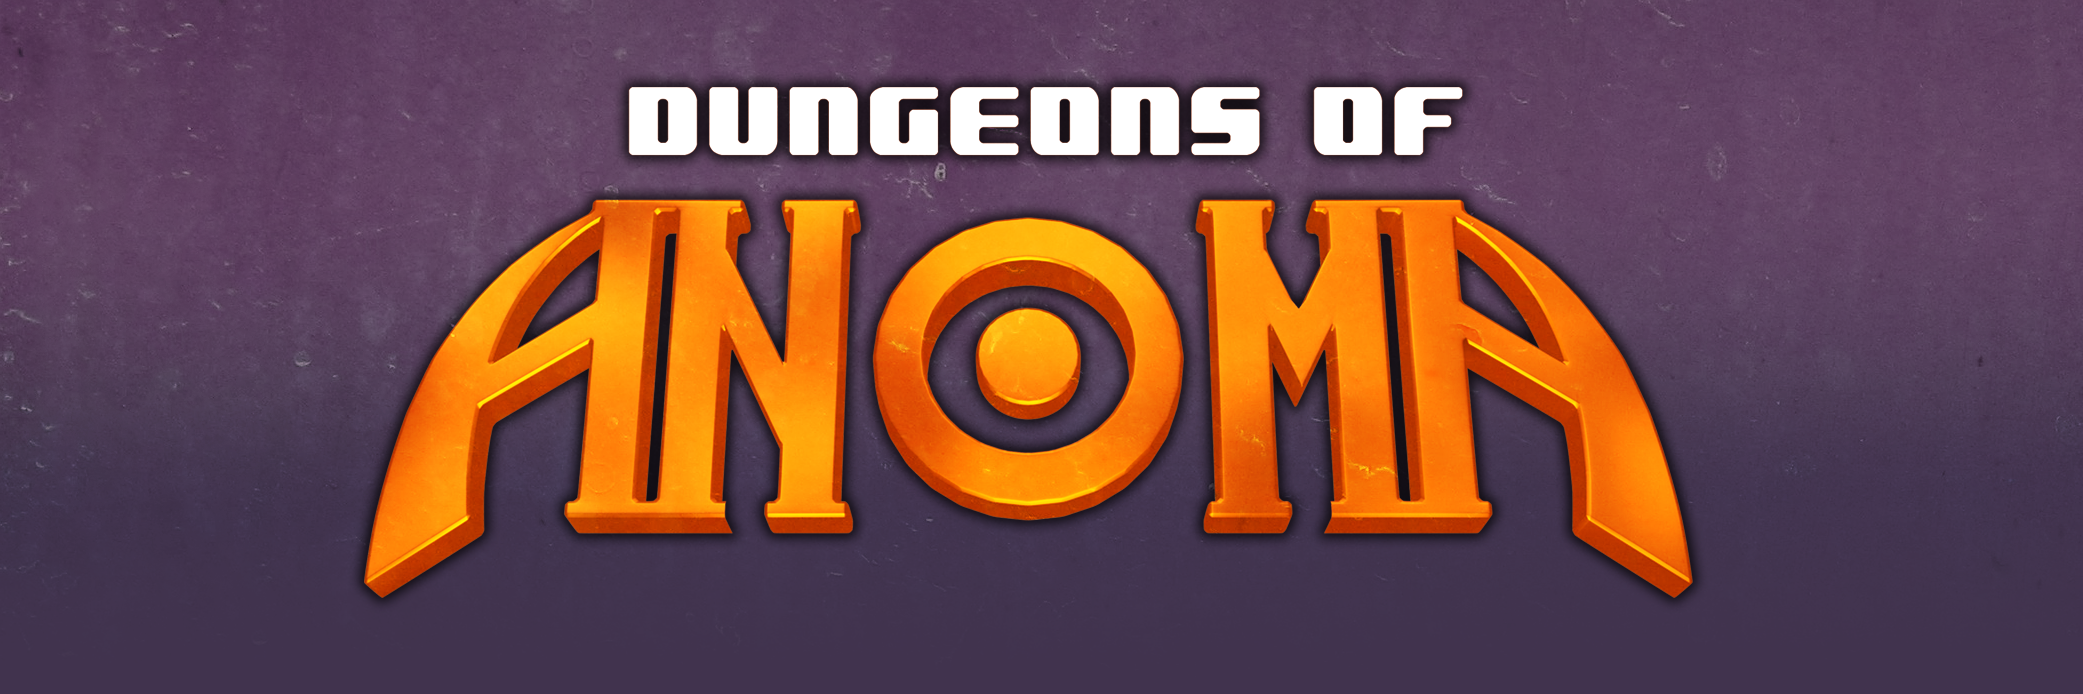 Dungeons of Anoma